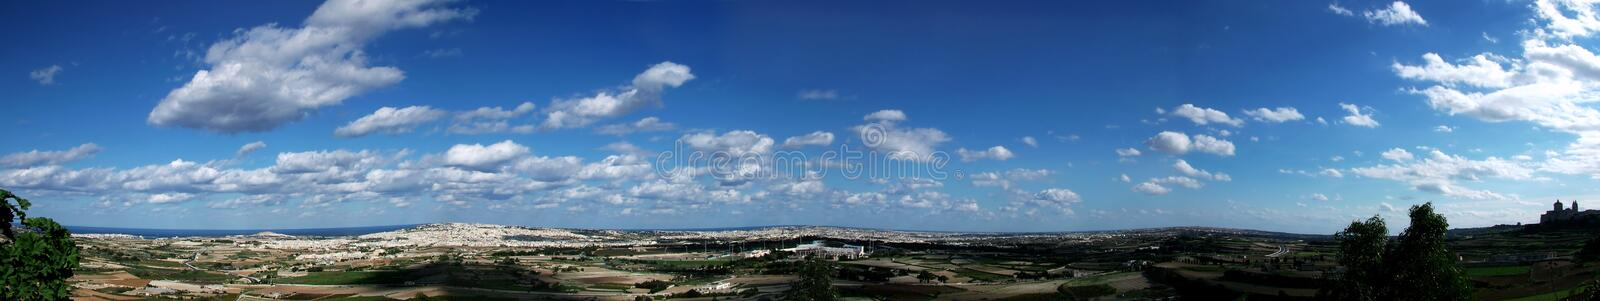 Landscape Scenery With Clouds Royalty Free Stock Photography